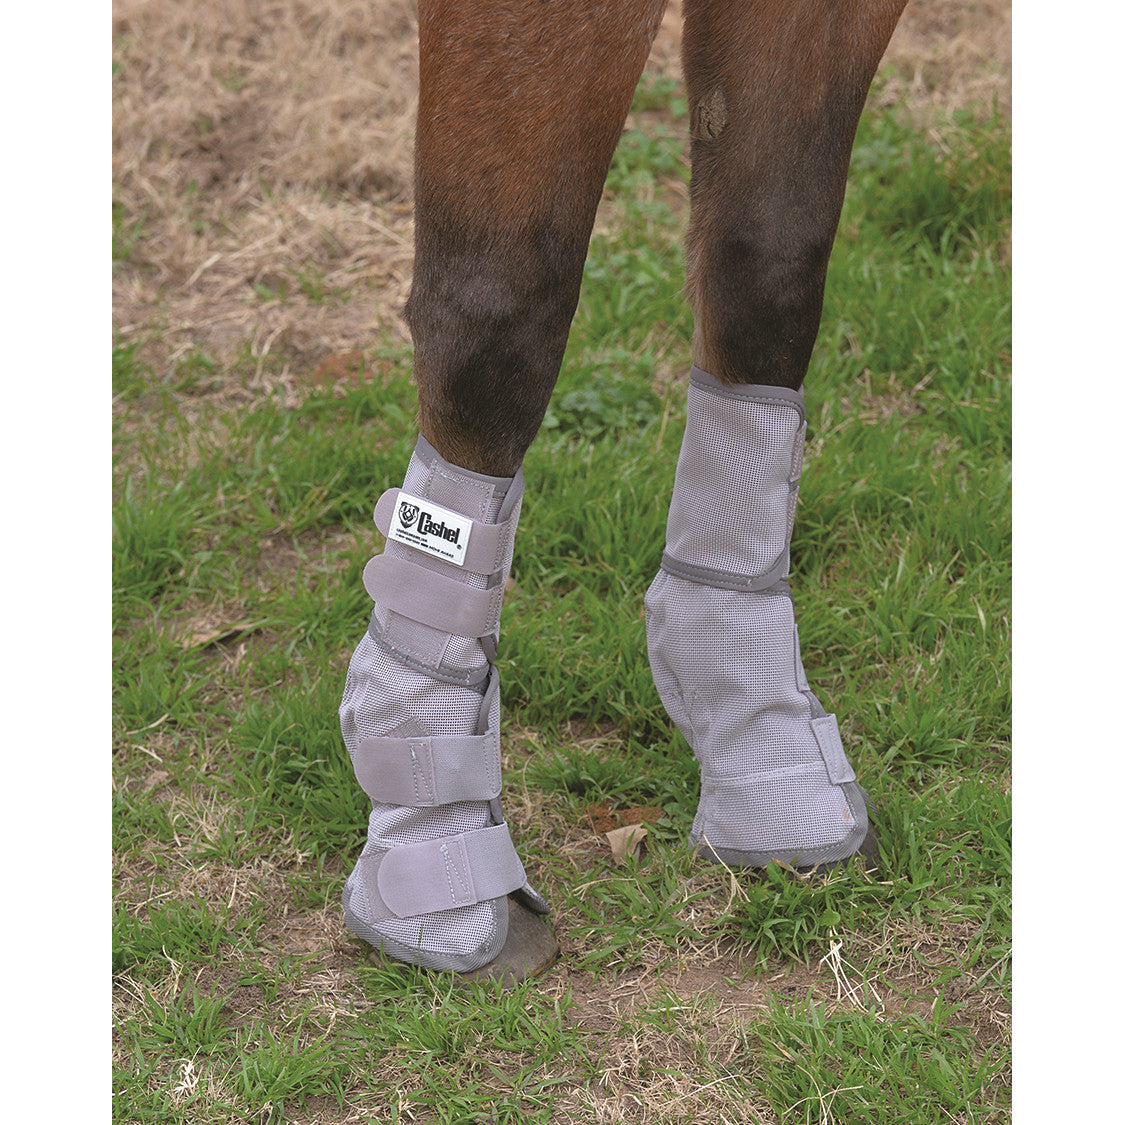 Cashel Crusader Leg Guard